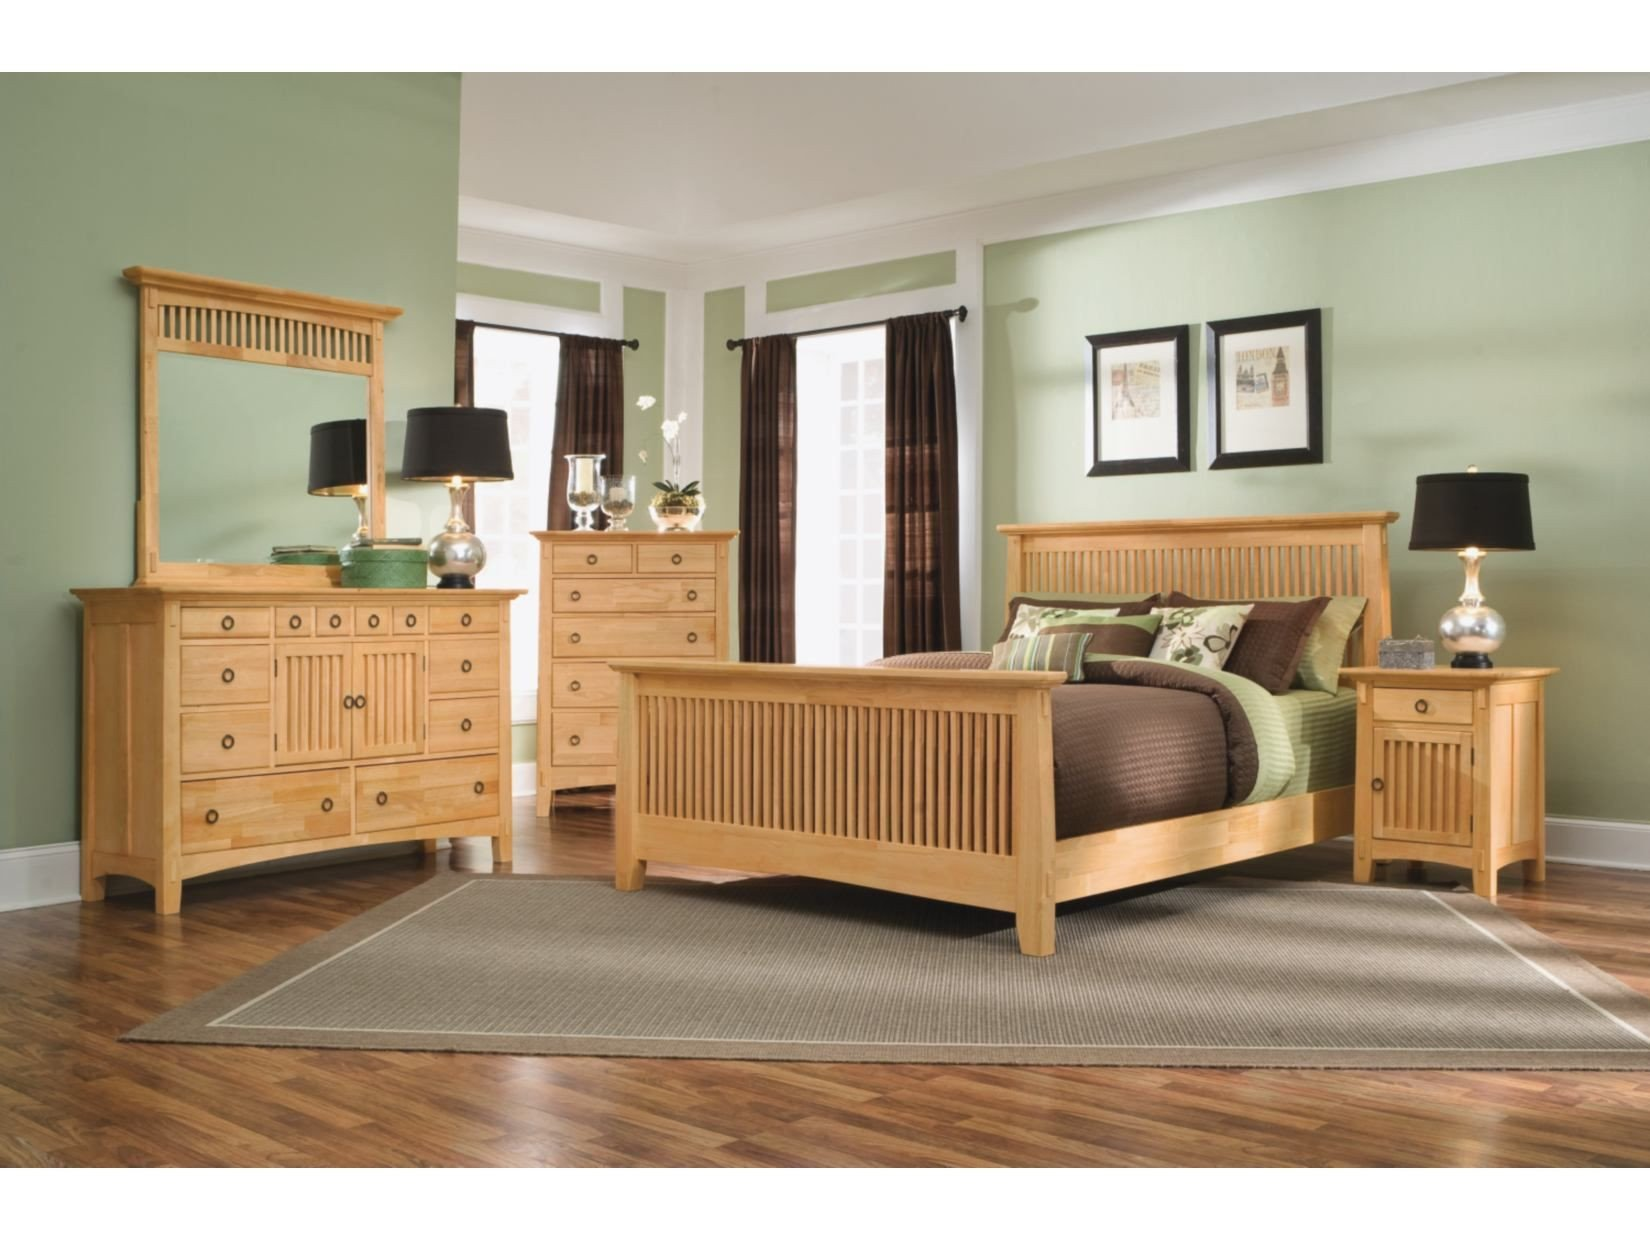 Trisha Yearwood Bedroom Furniture Luxury Arts & Crafts 5 Pc Bedroom Package American Signature